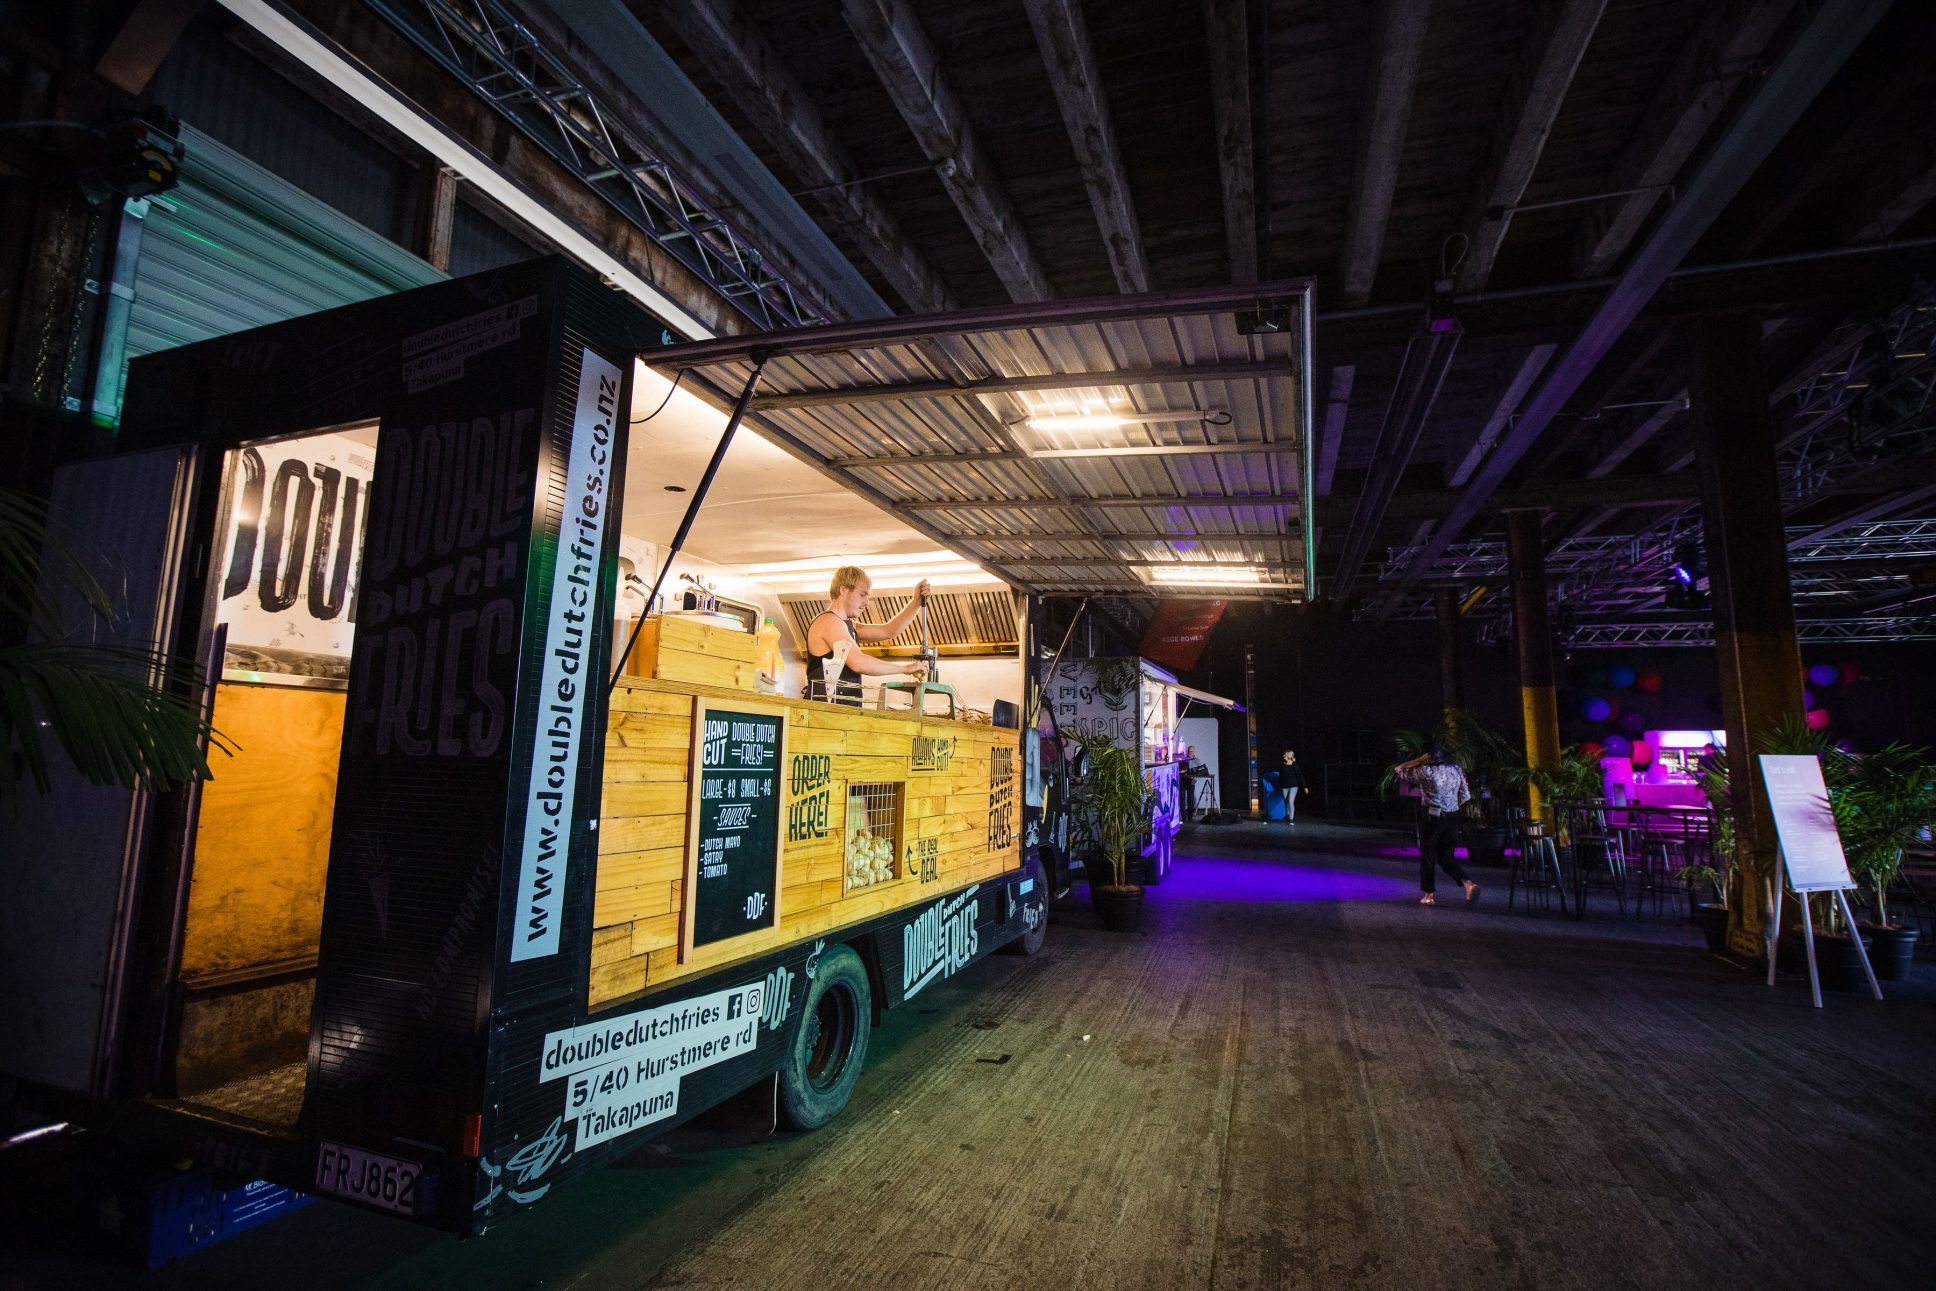 Food truck at event in Shed 10 Auckland.